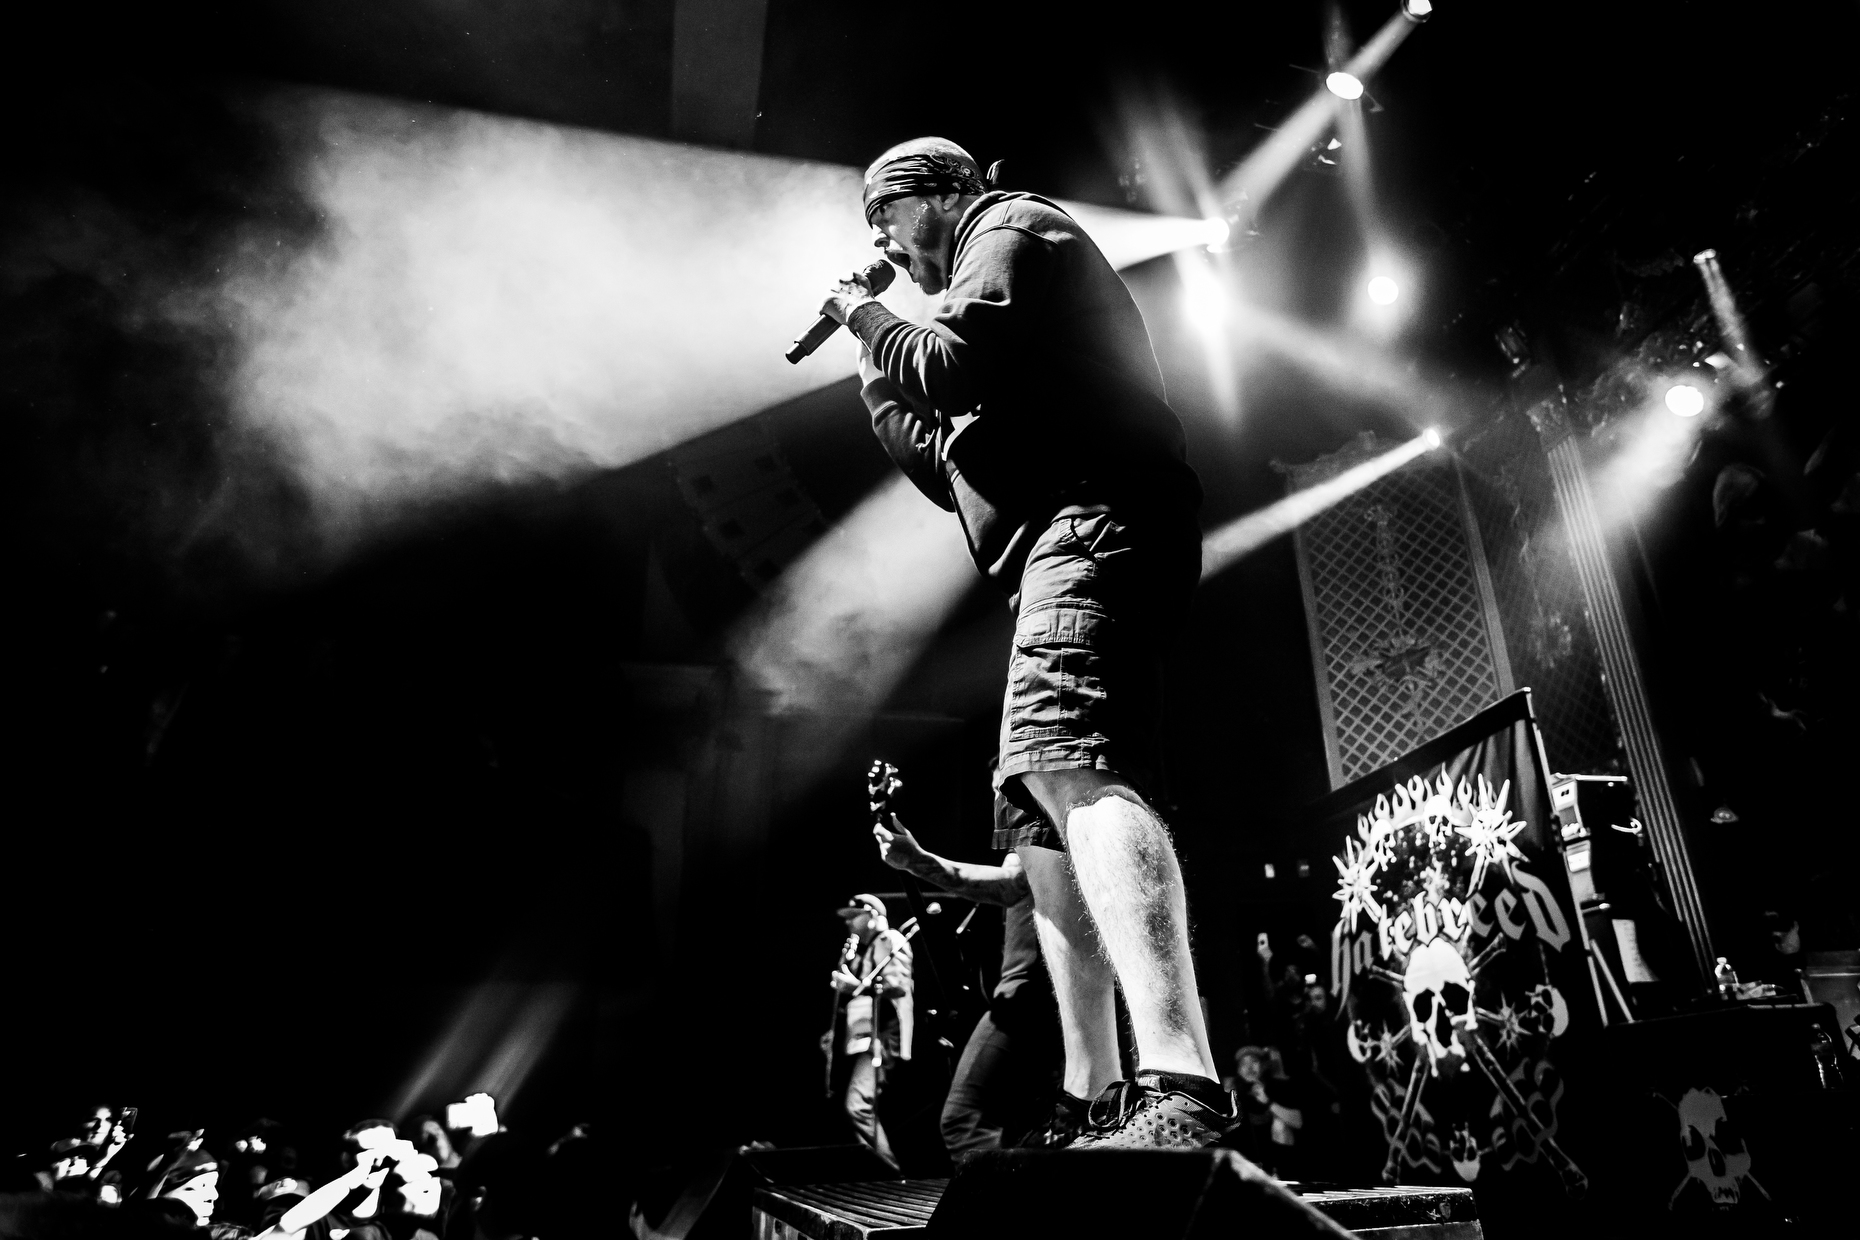 HATEBREED0054.JPG